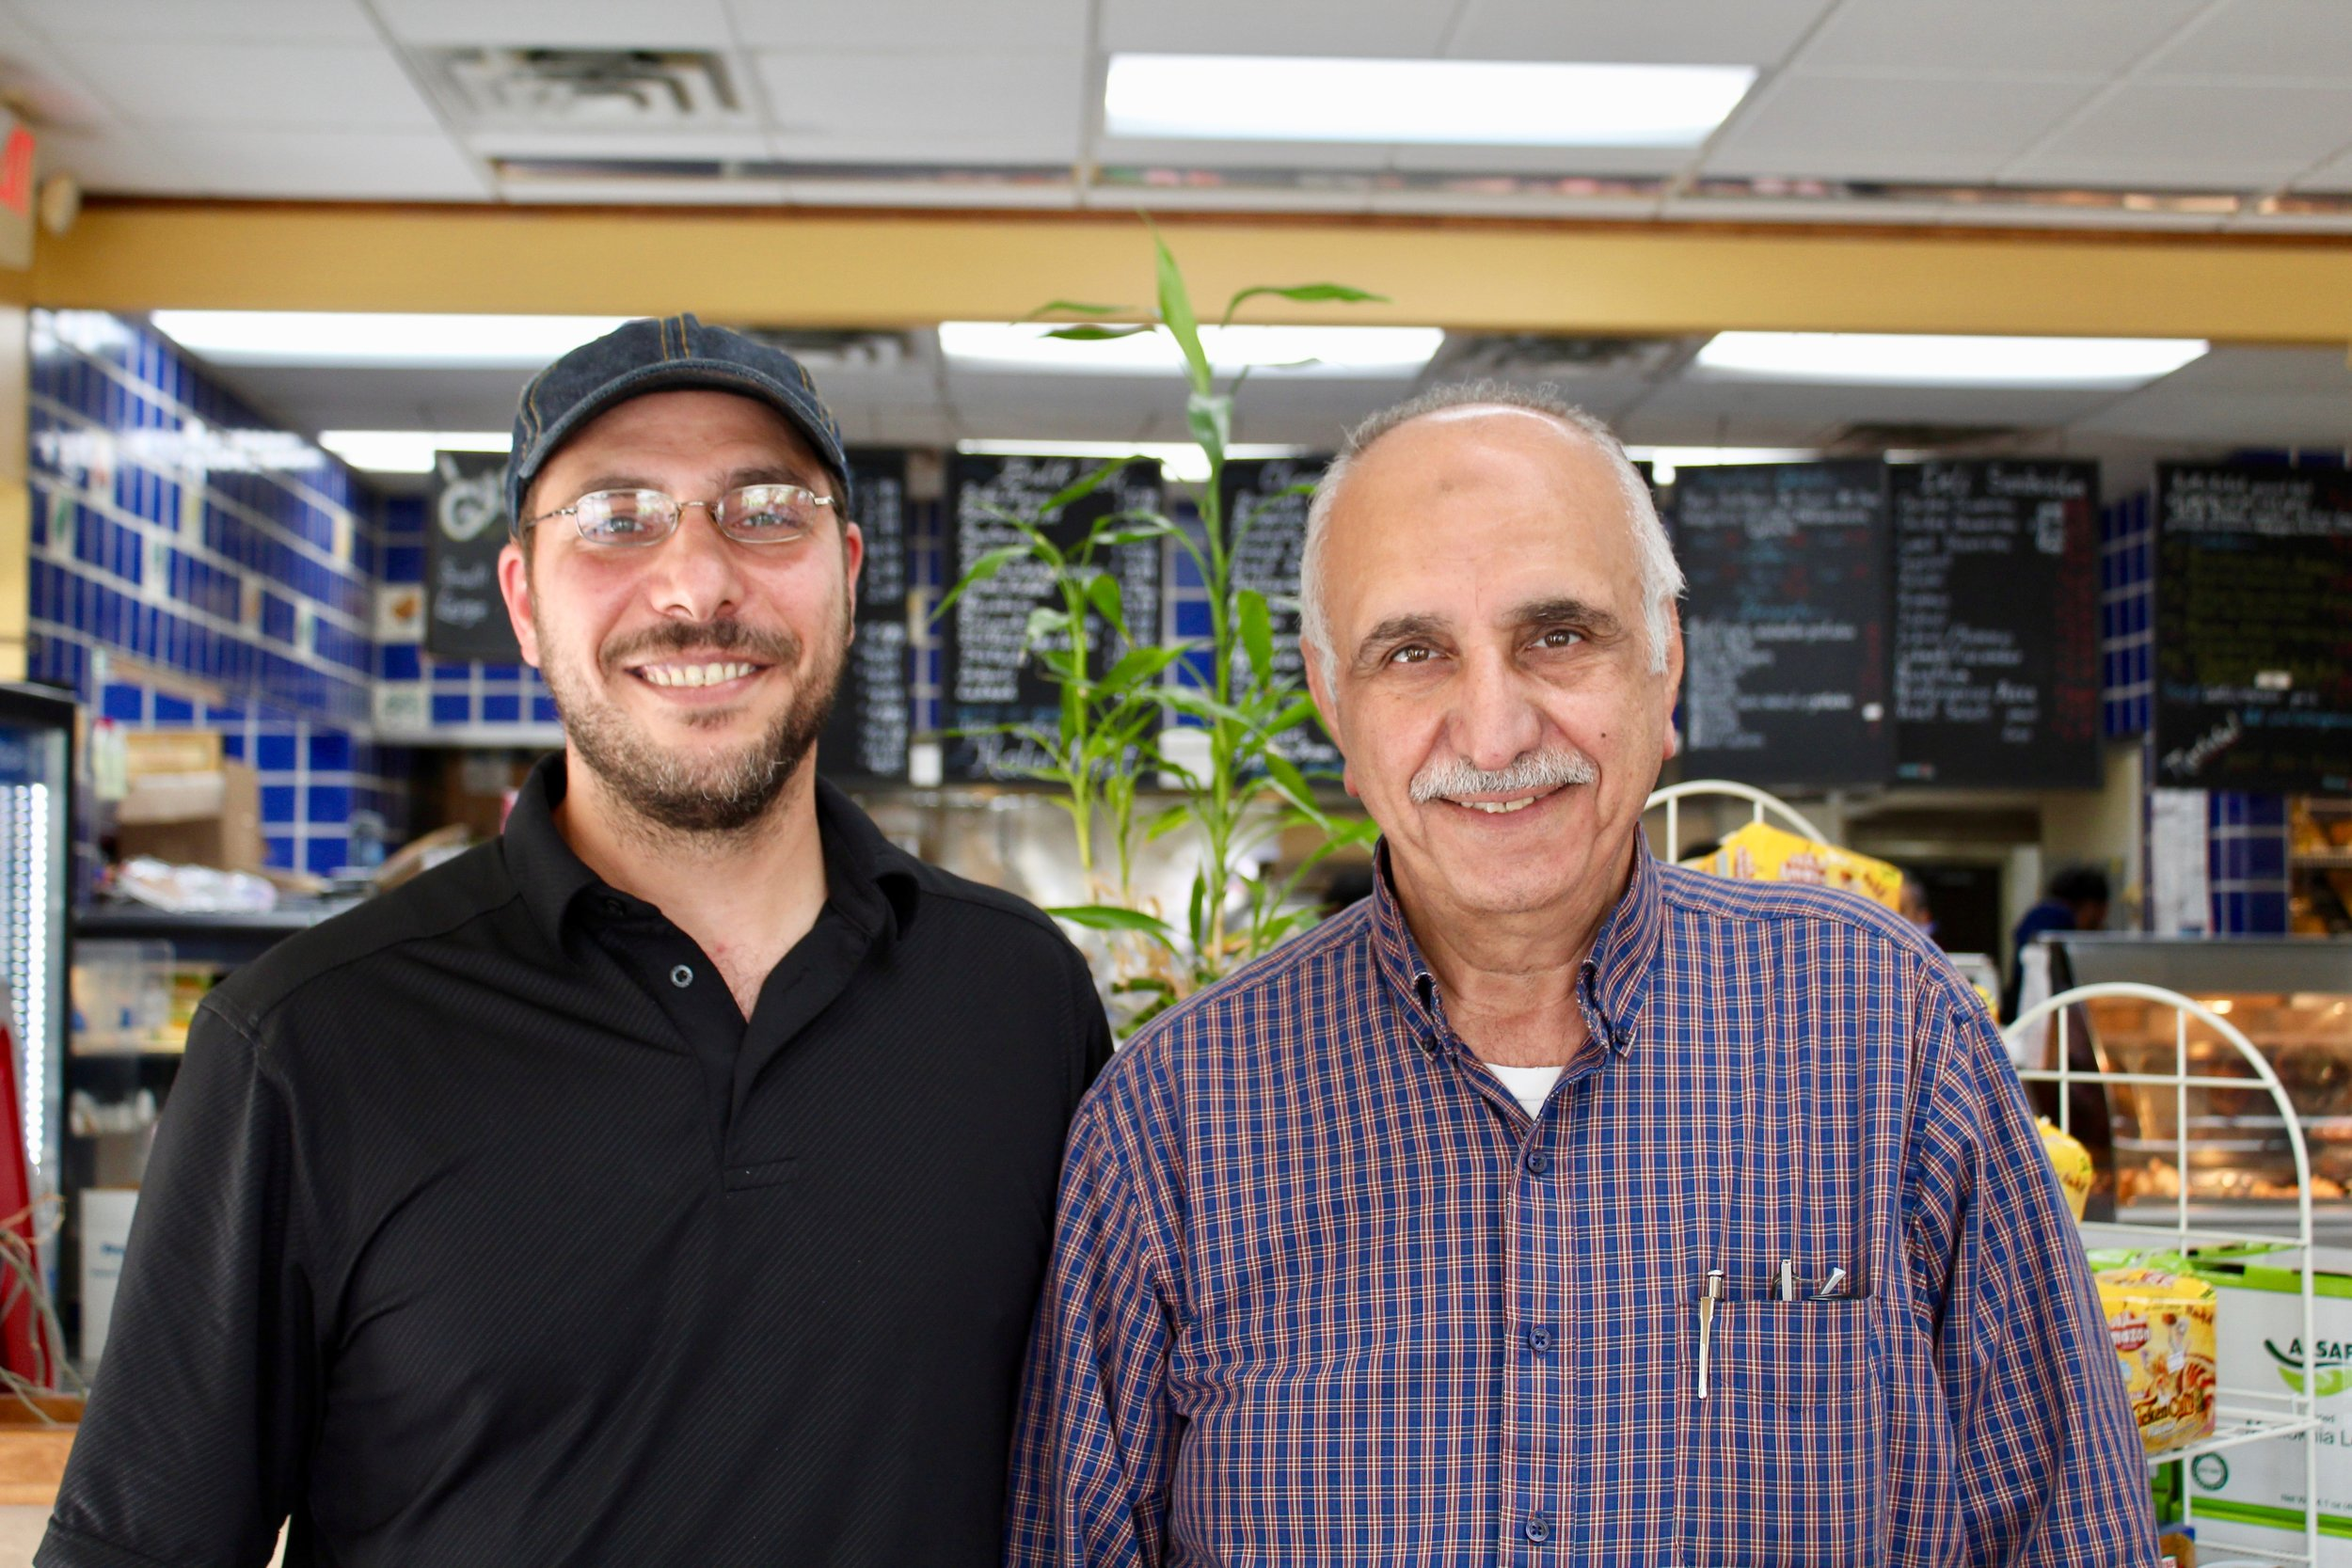 This father and son, Jameel and Sam, run the Mediterranean Bakery.